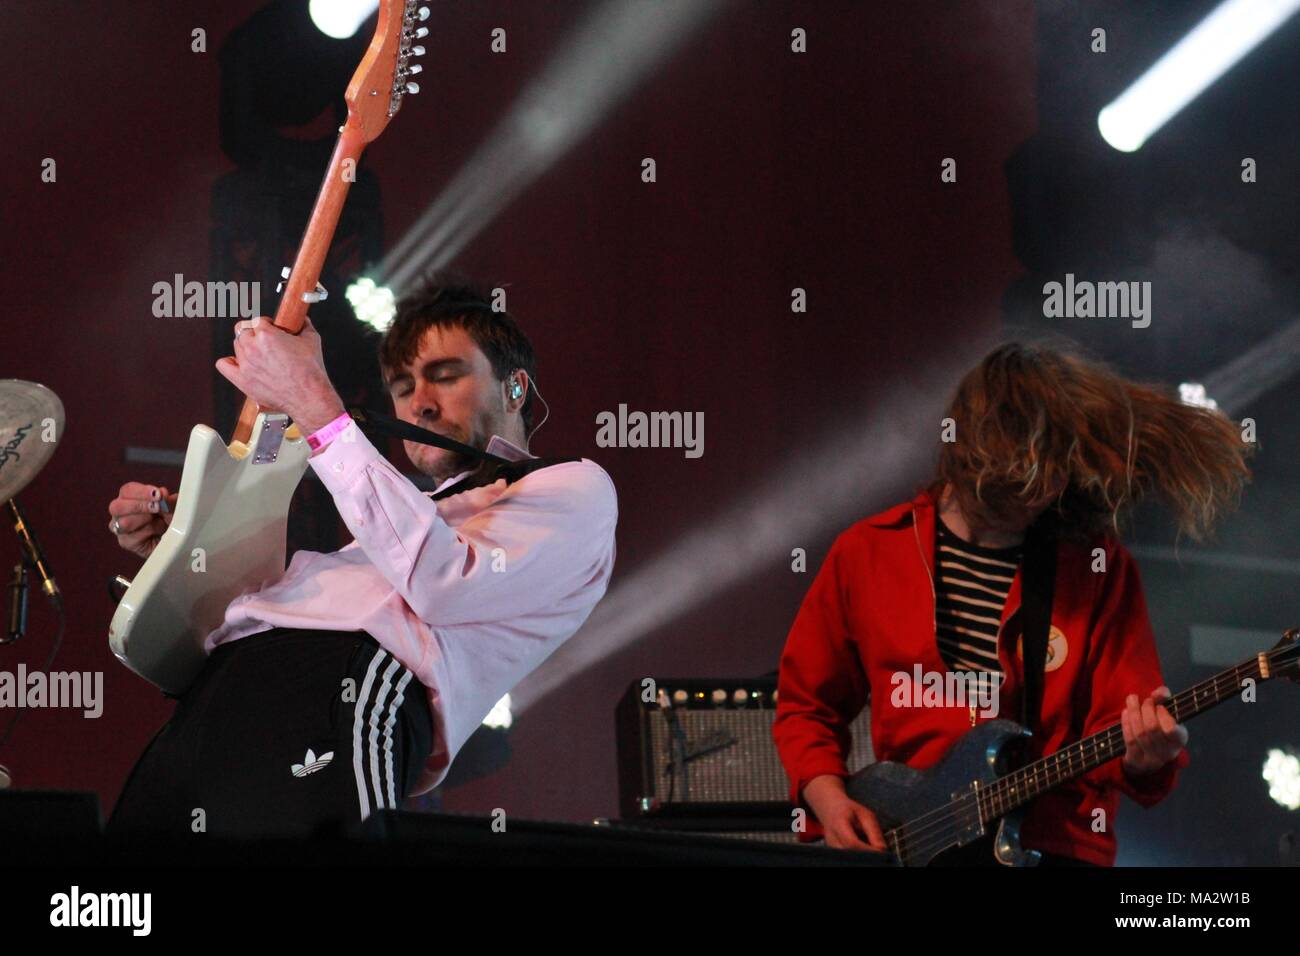 The Vaccines play live on the main stage at Truck Festival 2017 - Stock Image